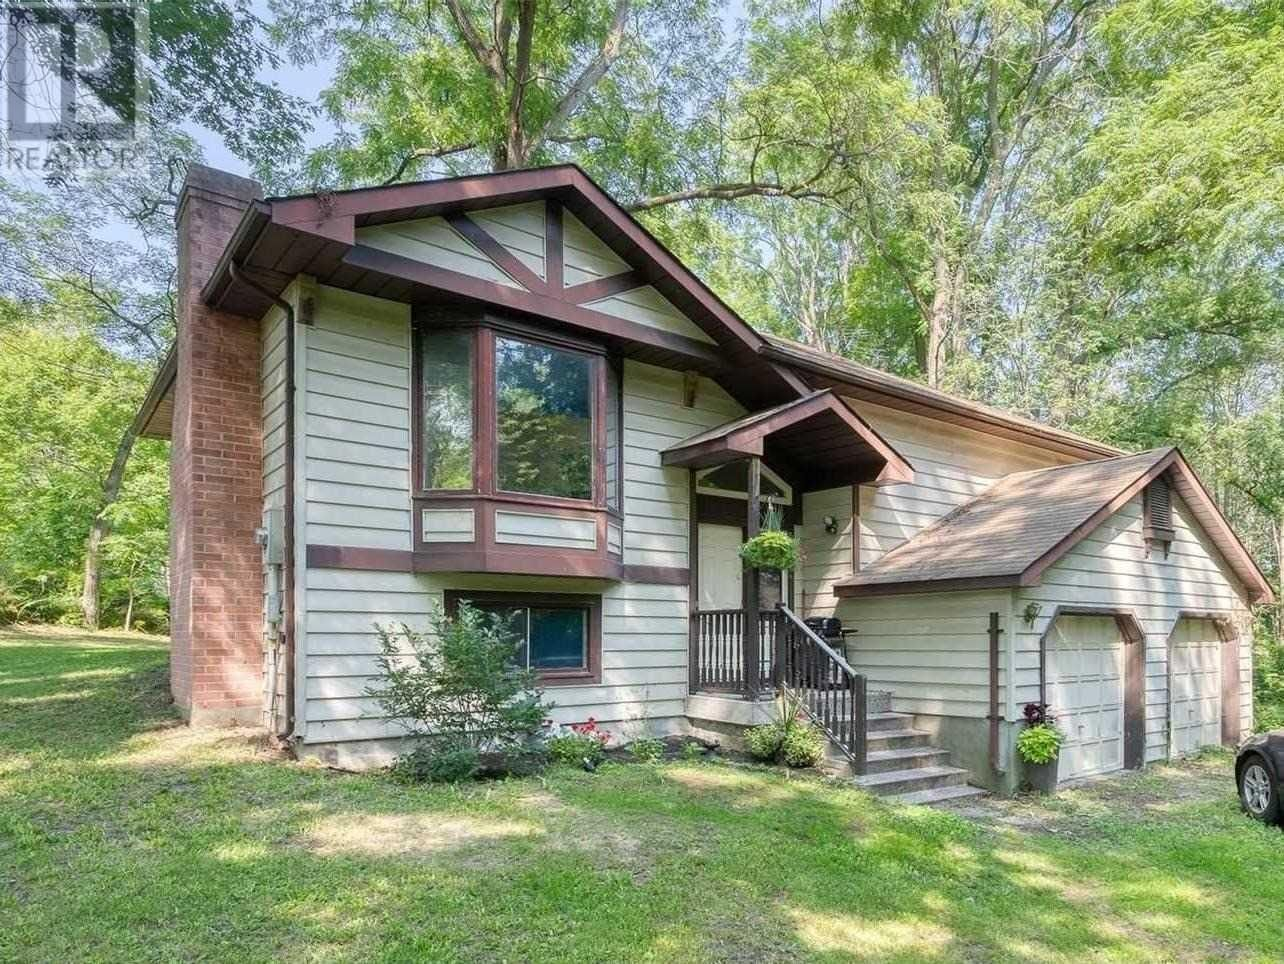 Main Photo: 561 BRIMLEY RD N in Alnwick/Haldimand: House for rent : MLS®# X5388781